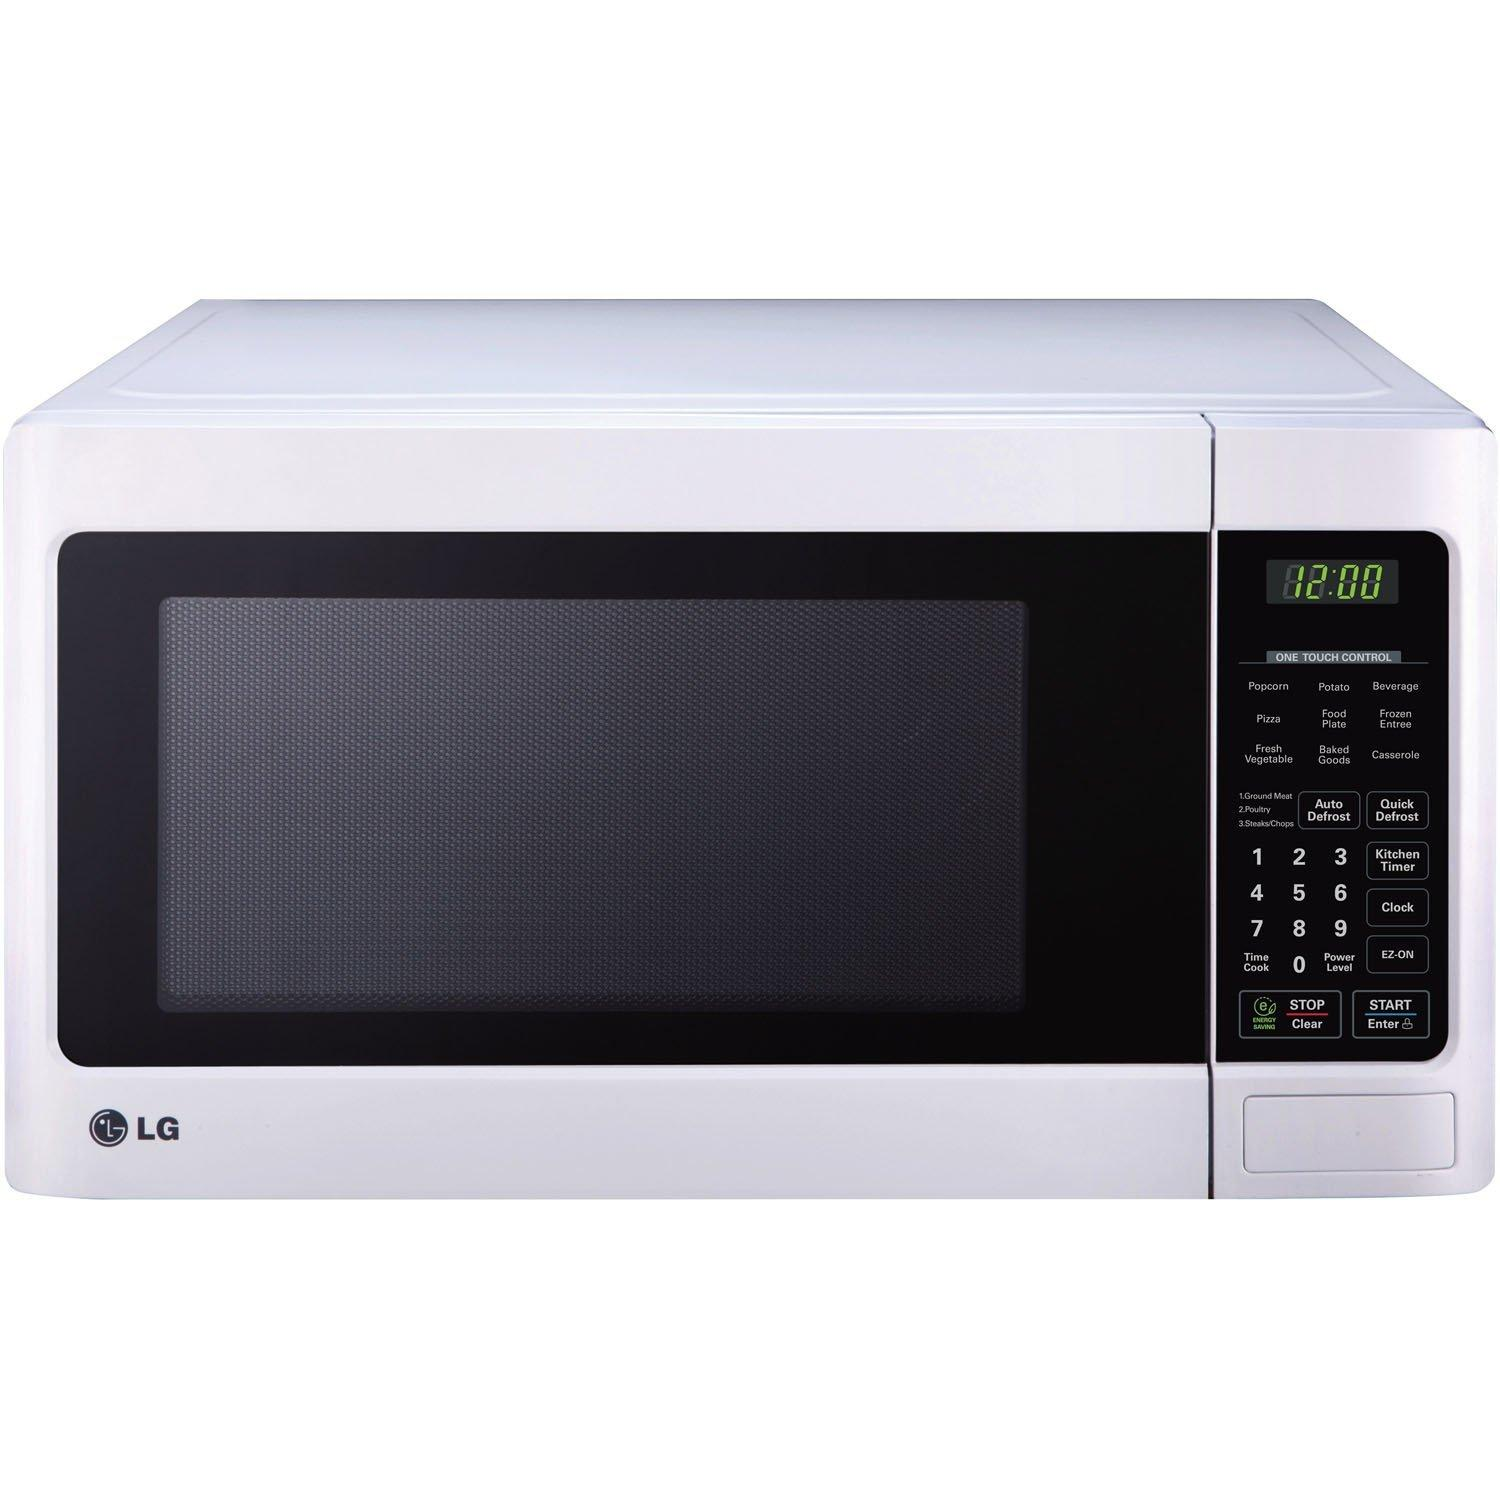 LCS1112S Lg lcs1112s Countertop Microwaves